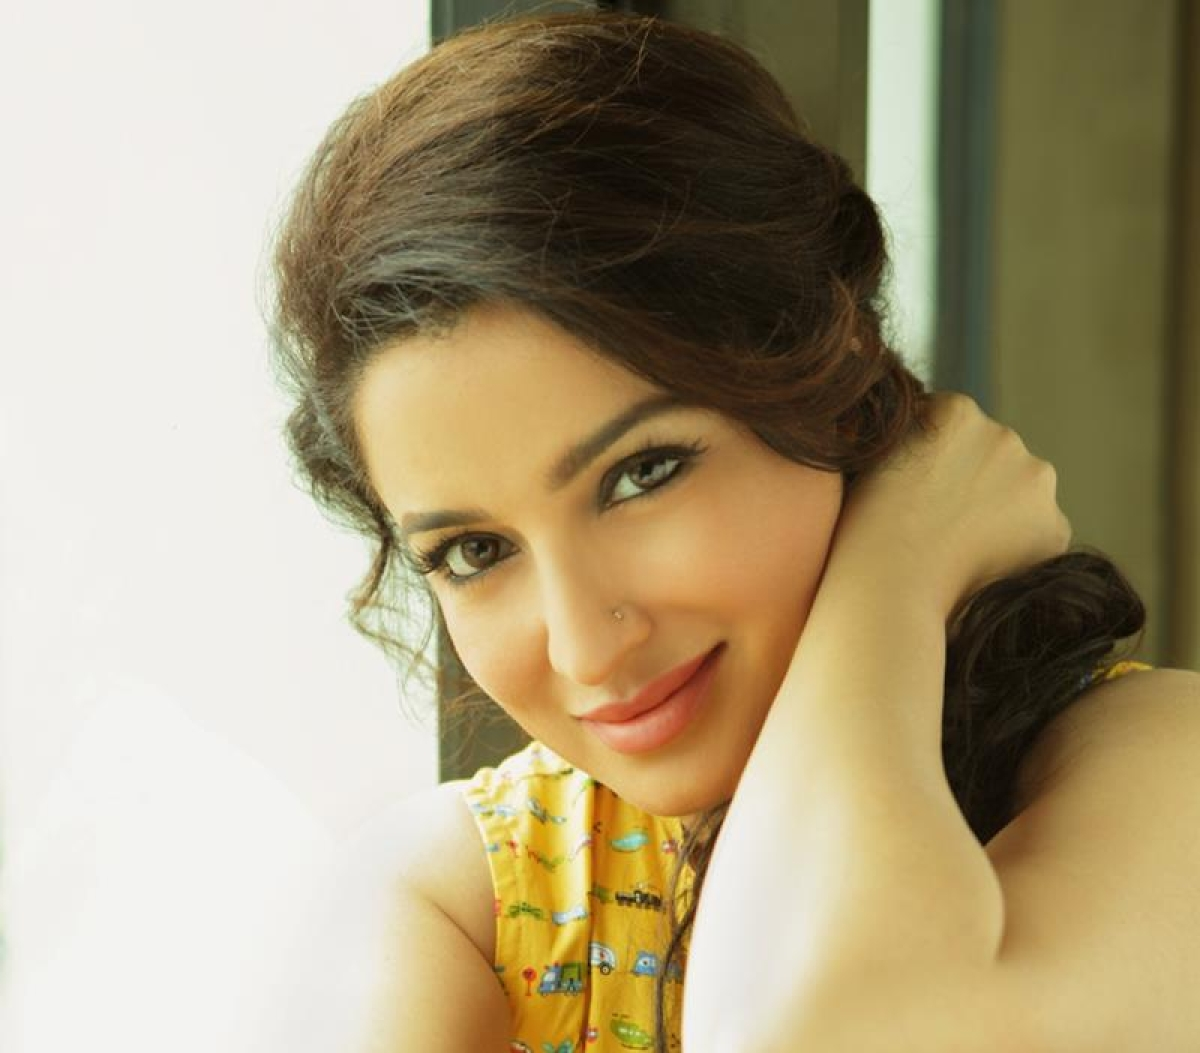 Tisca Chopra: If a woman can make a baby, she can surely make a film